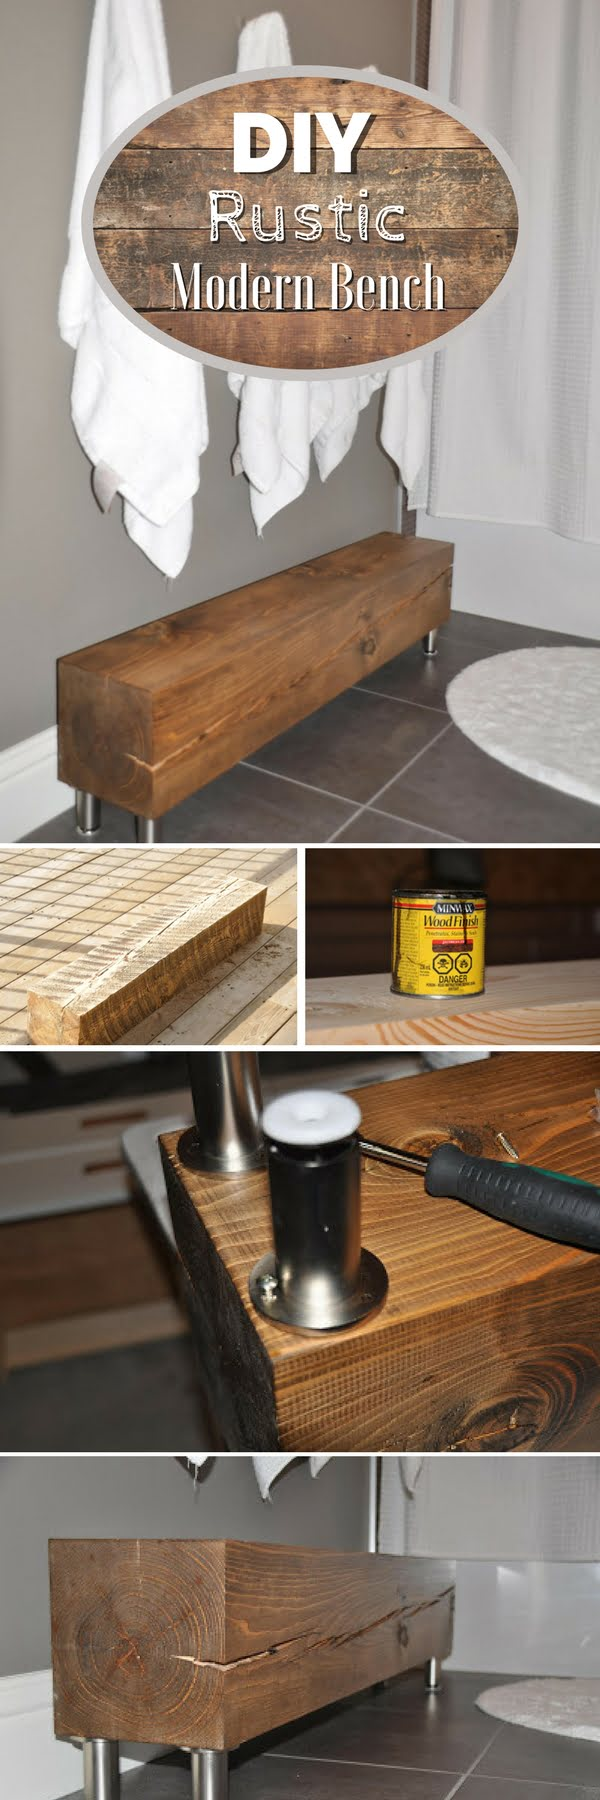 Check out how to build an easy DIY rustic modern bench